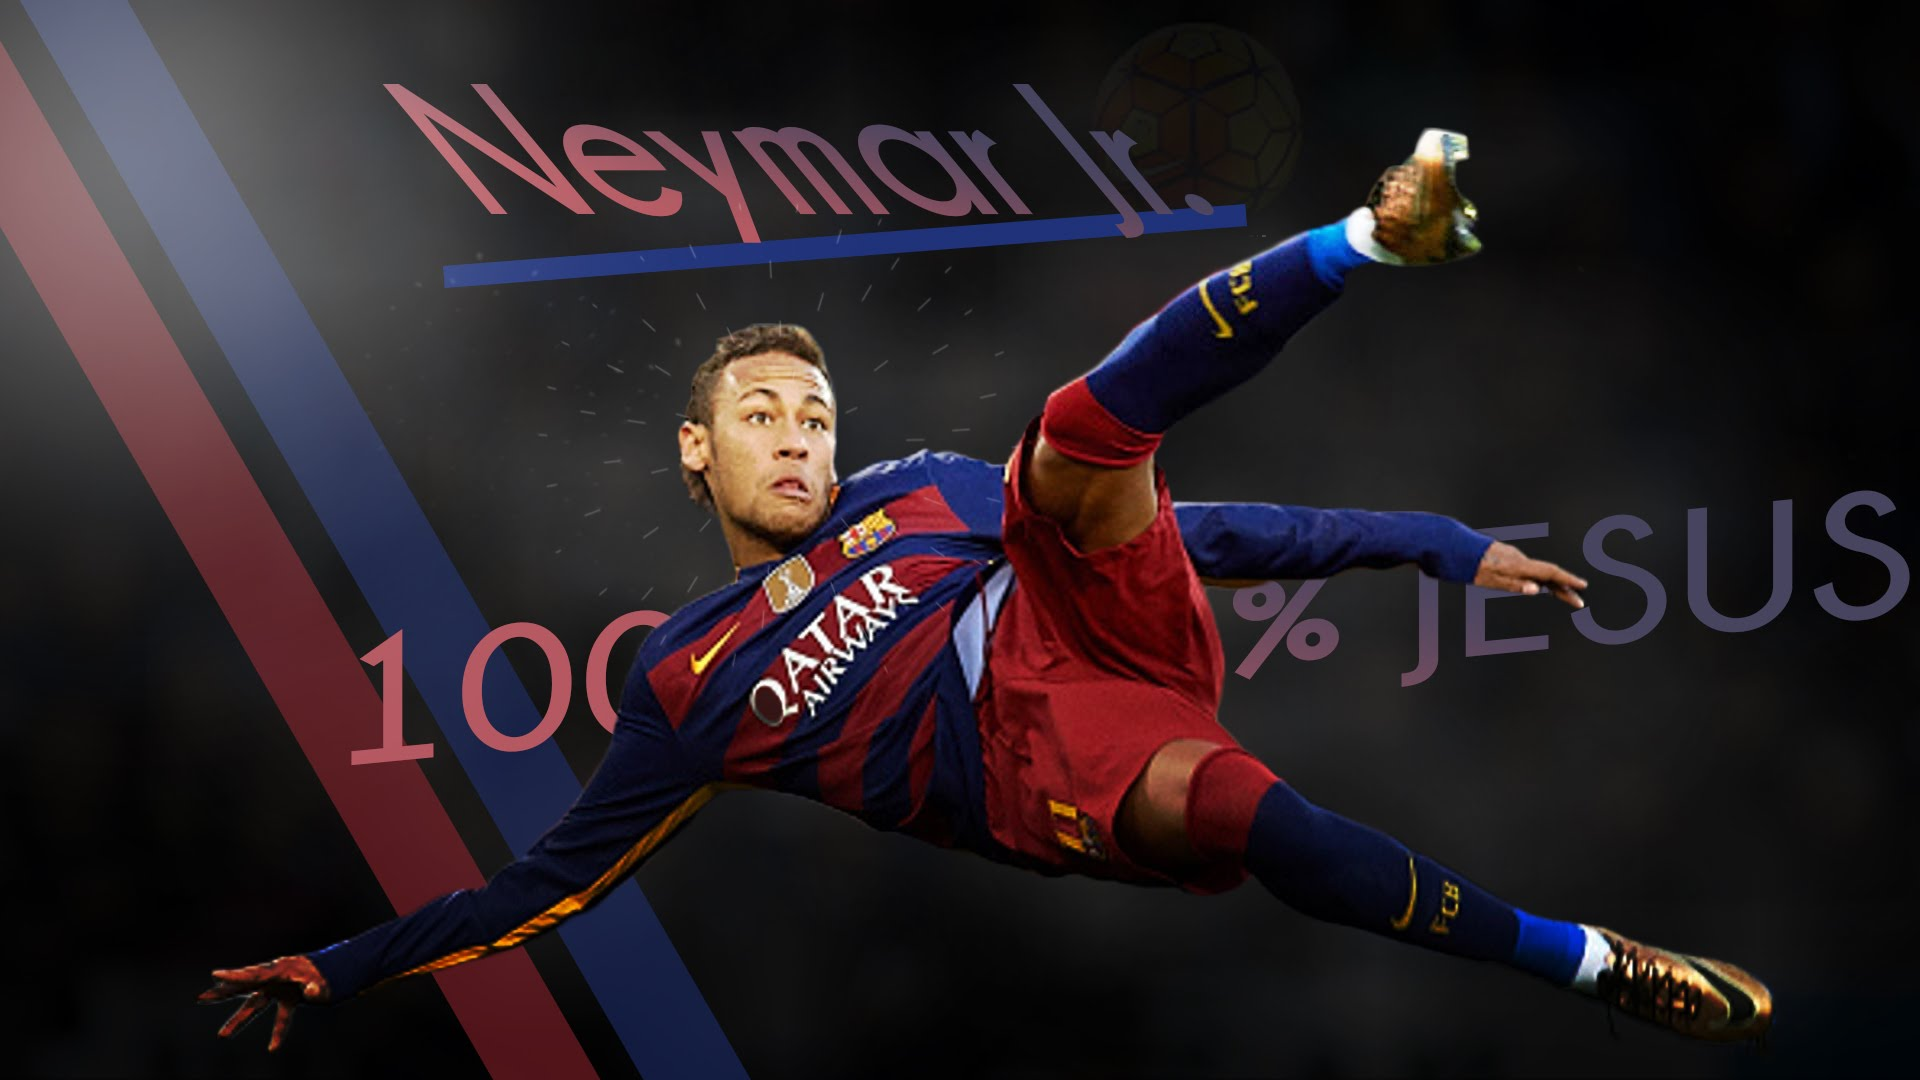 Desktop Neymar Football Soccer Player Hd Free Kick Ball In Air Mobile Bakground Download Pictures